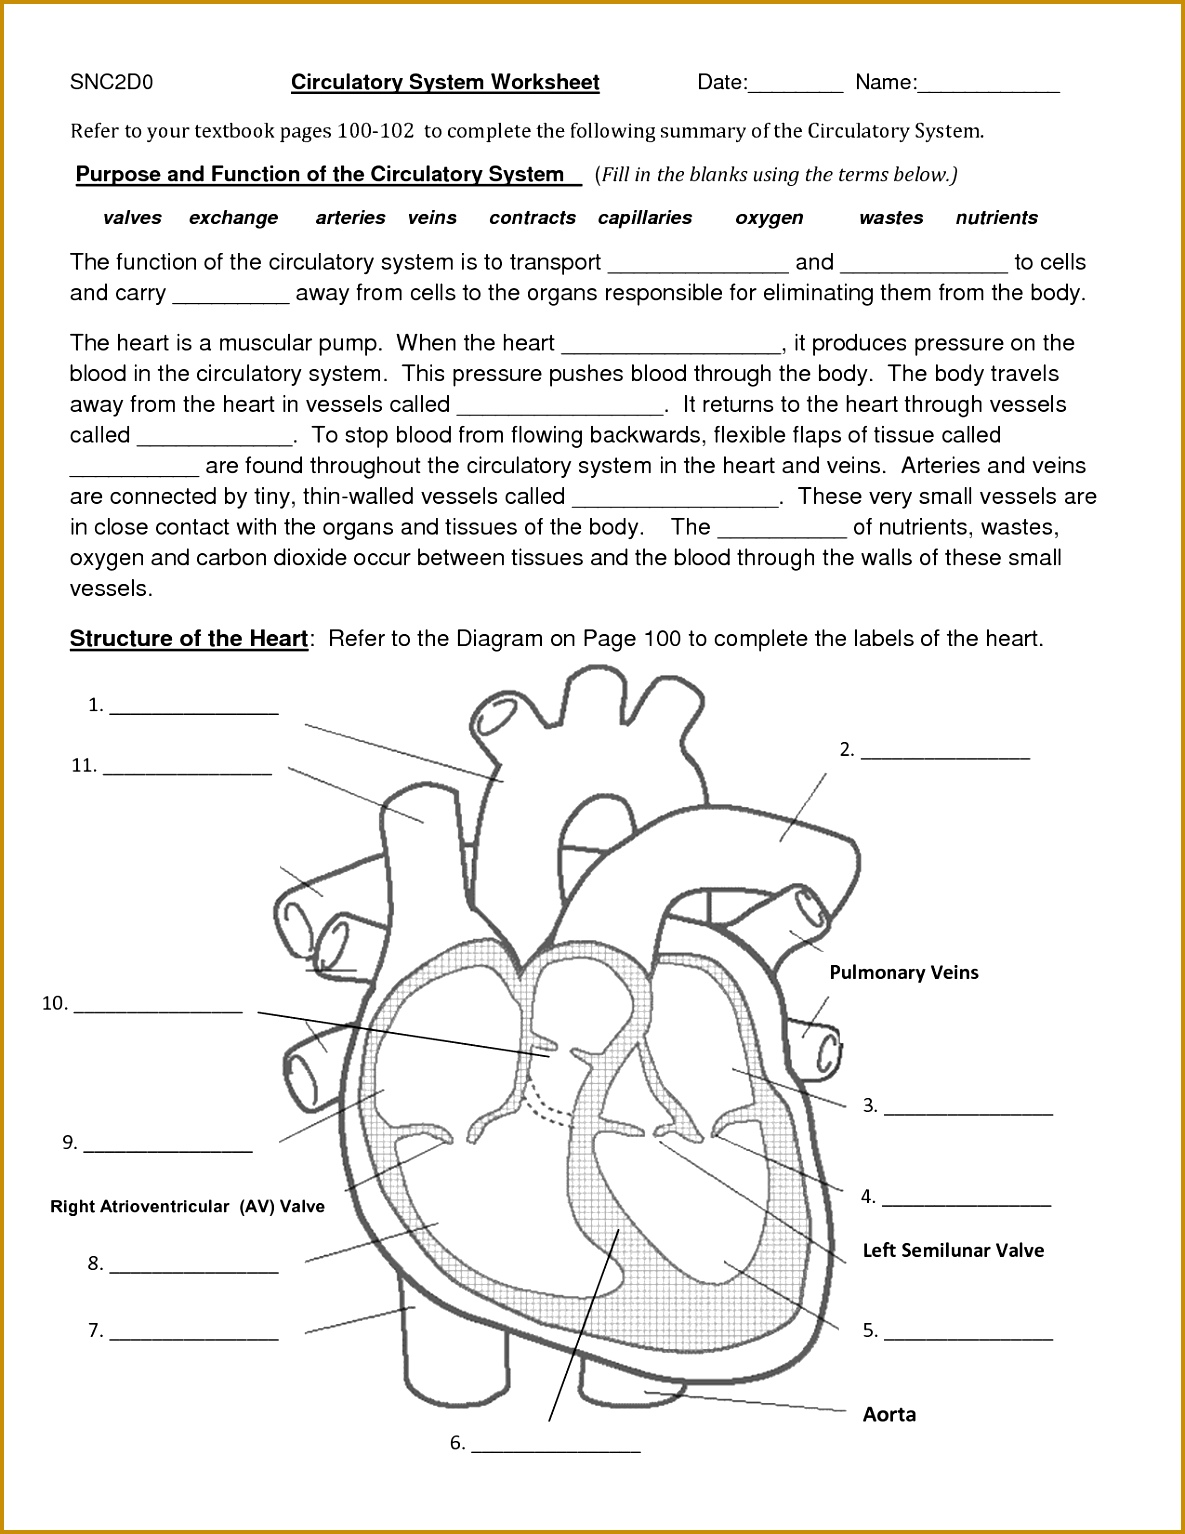 4 Circulatory System Worksheet